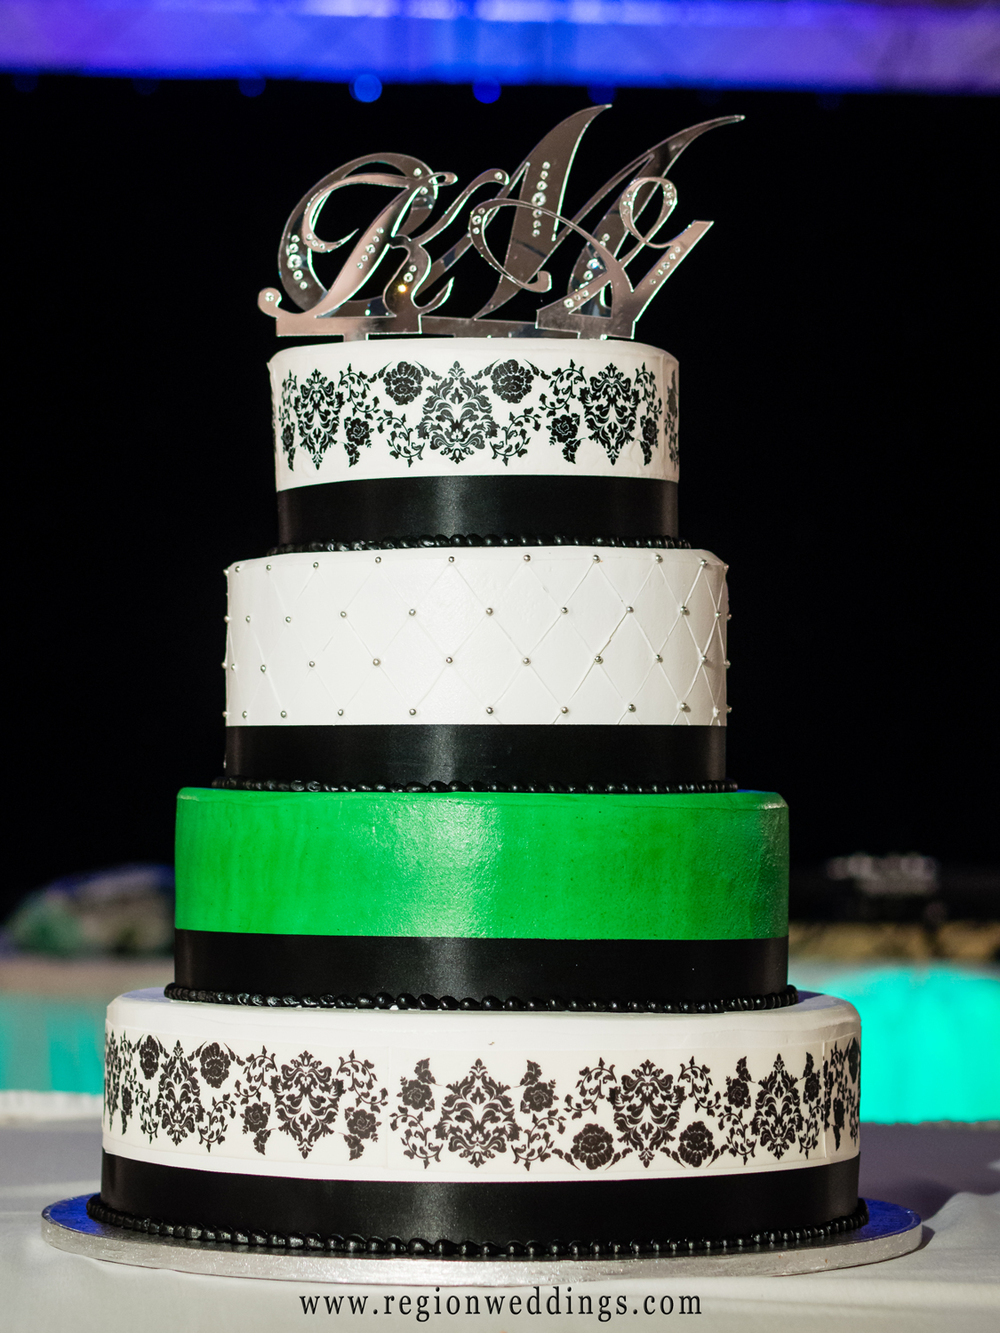 Green striped wedding cake.